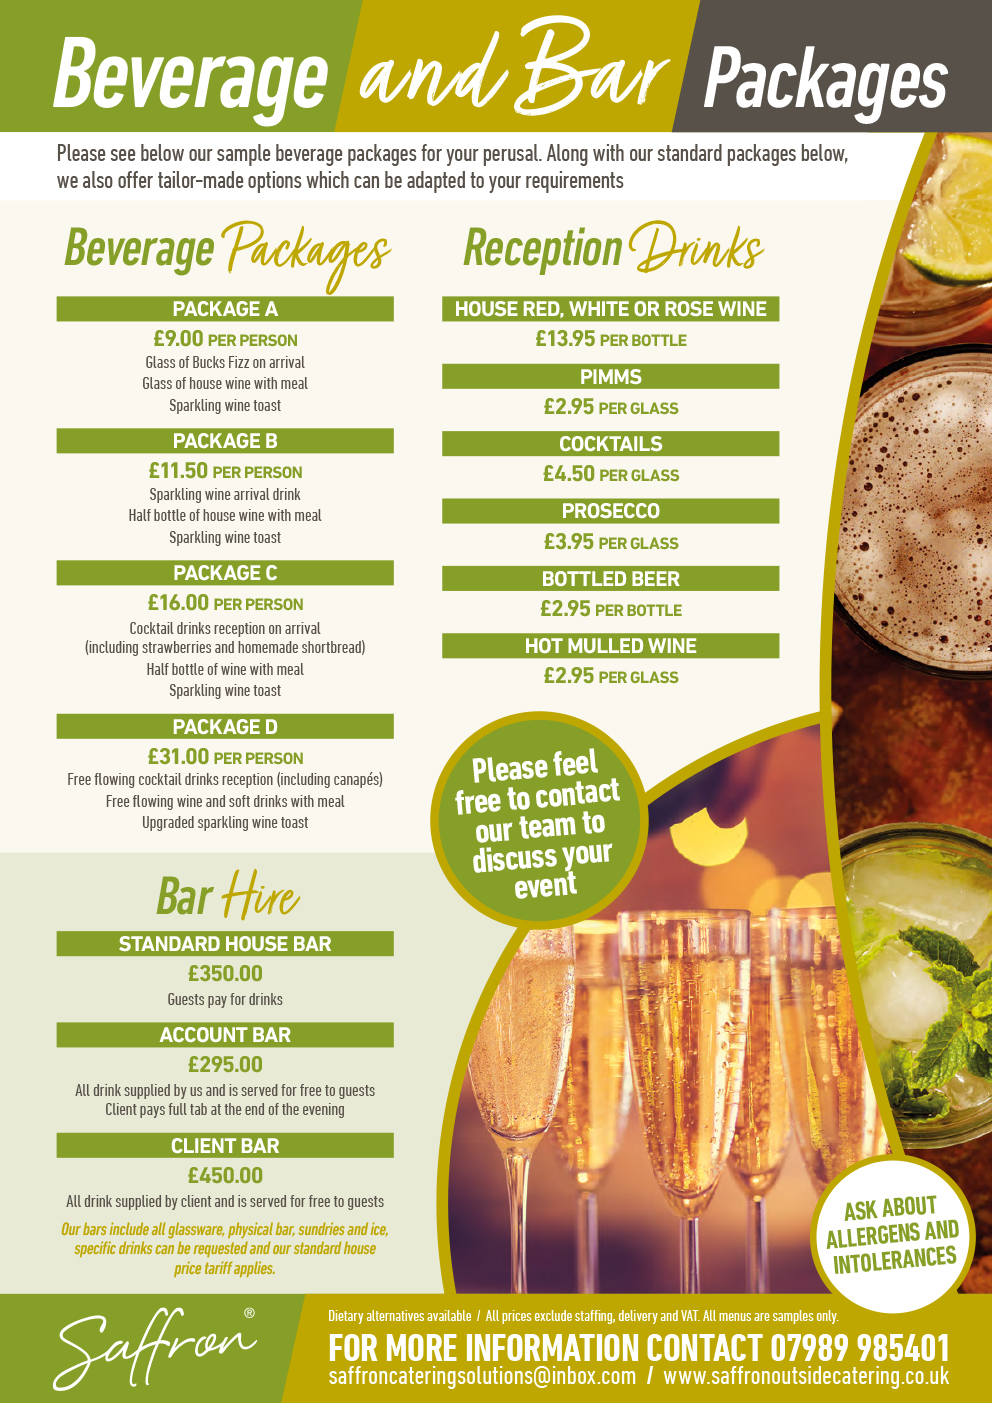 Saffron Menu Beverage Bar - Beverage and Bar